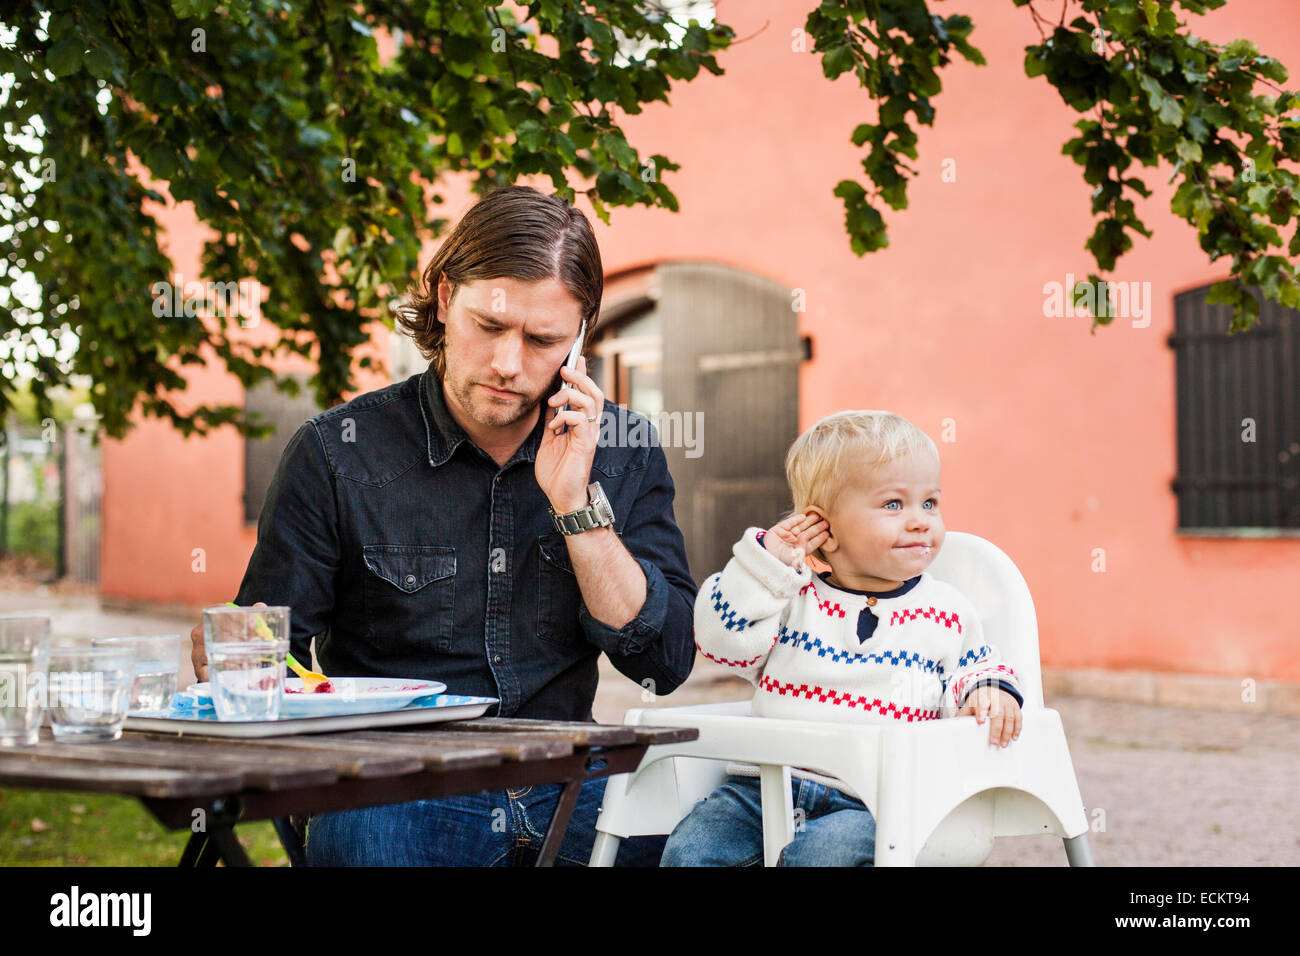 Young man using mobile phone while feeding baby girl in park - Stock Image